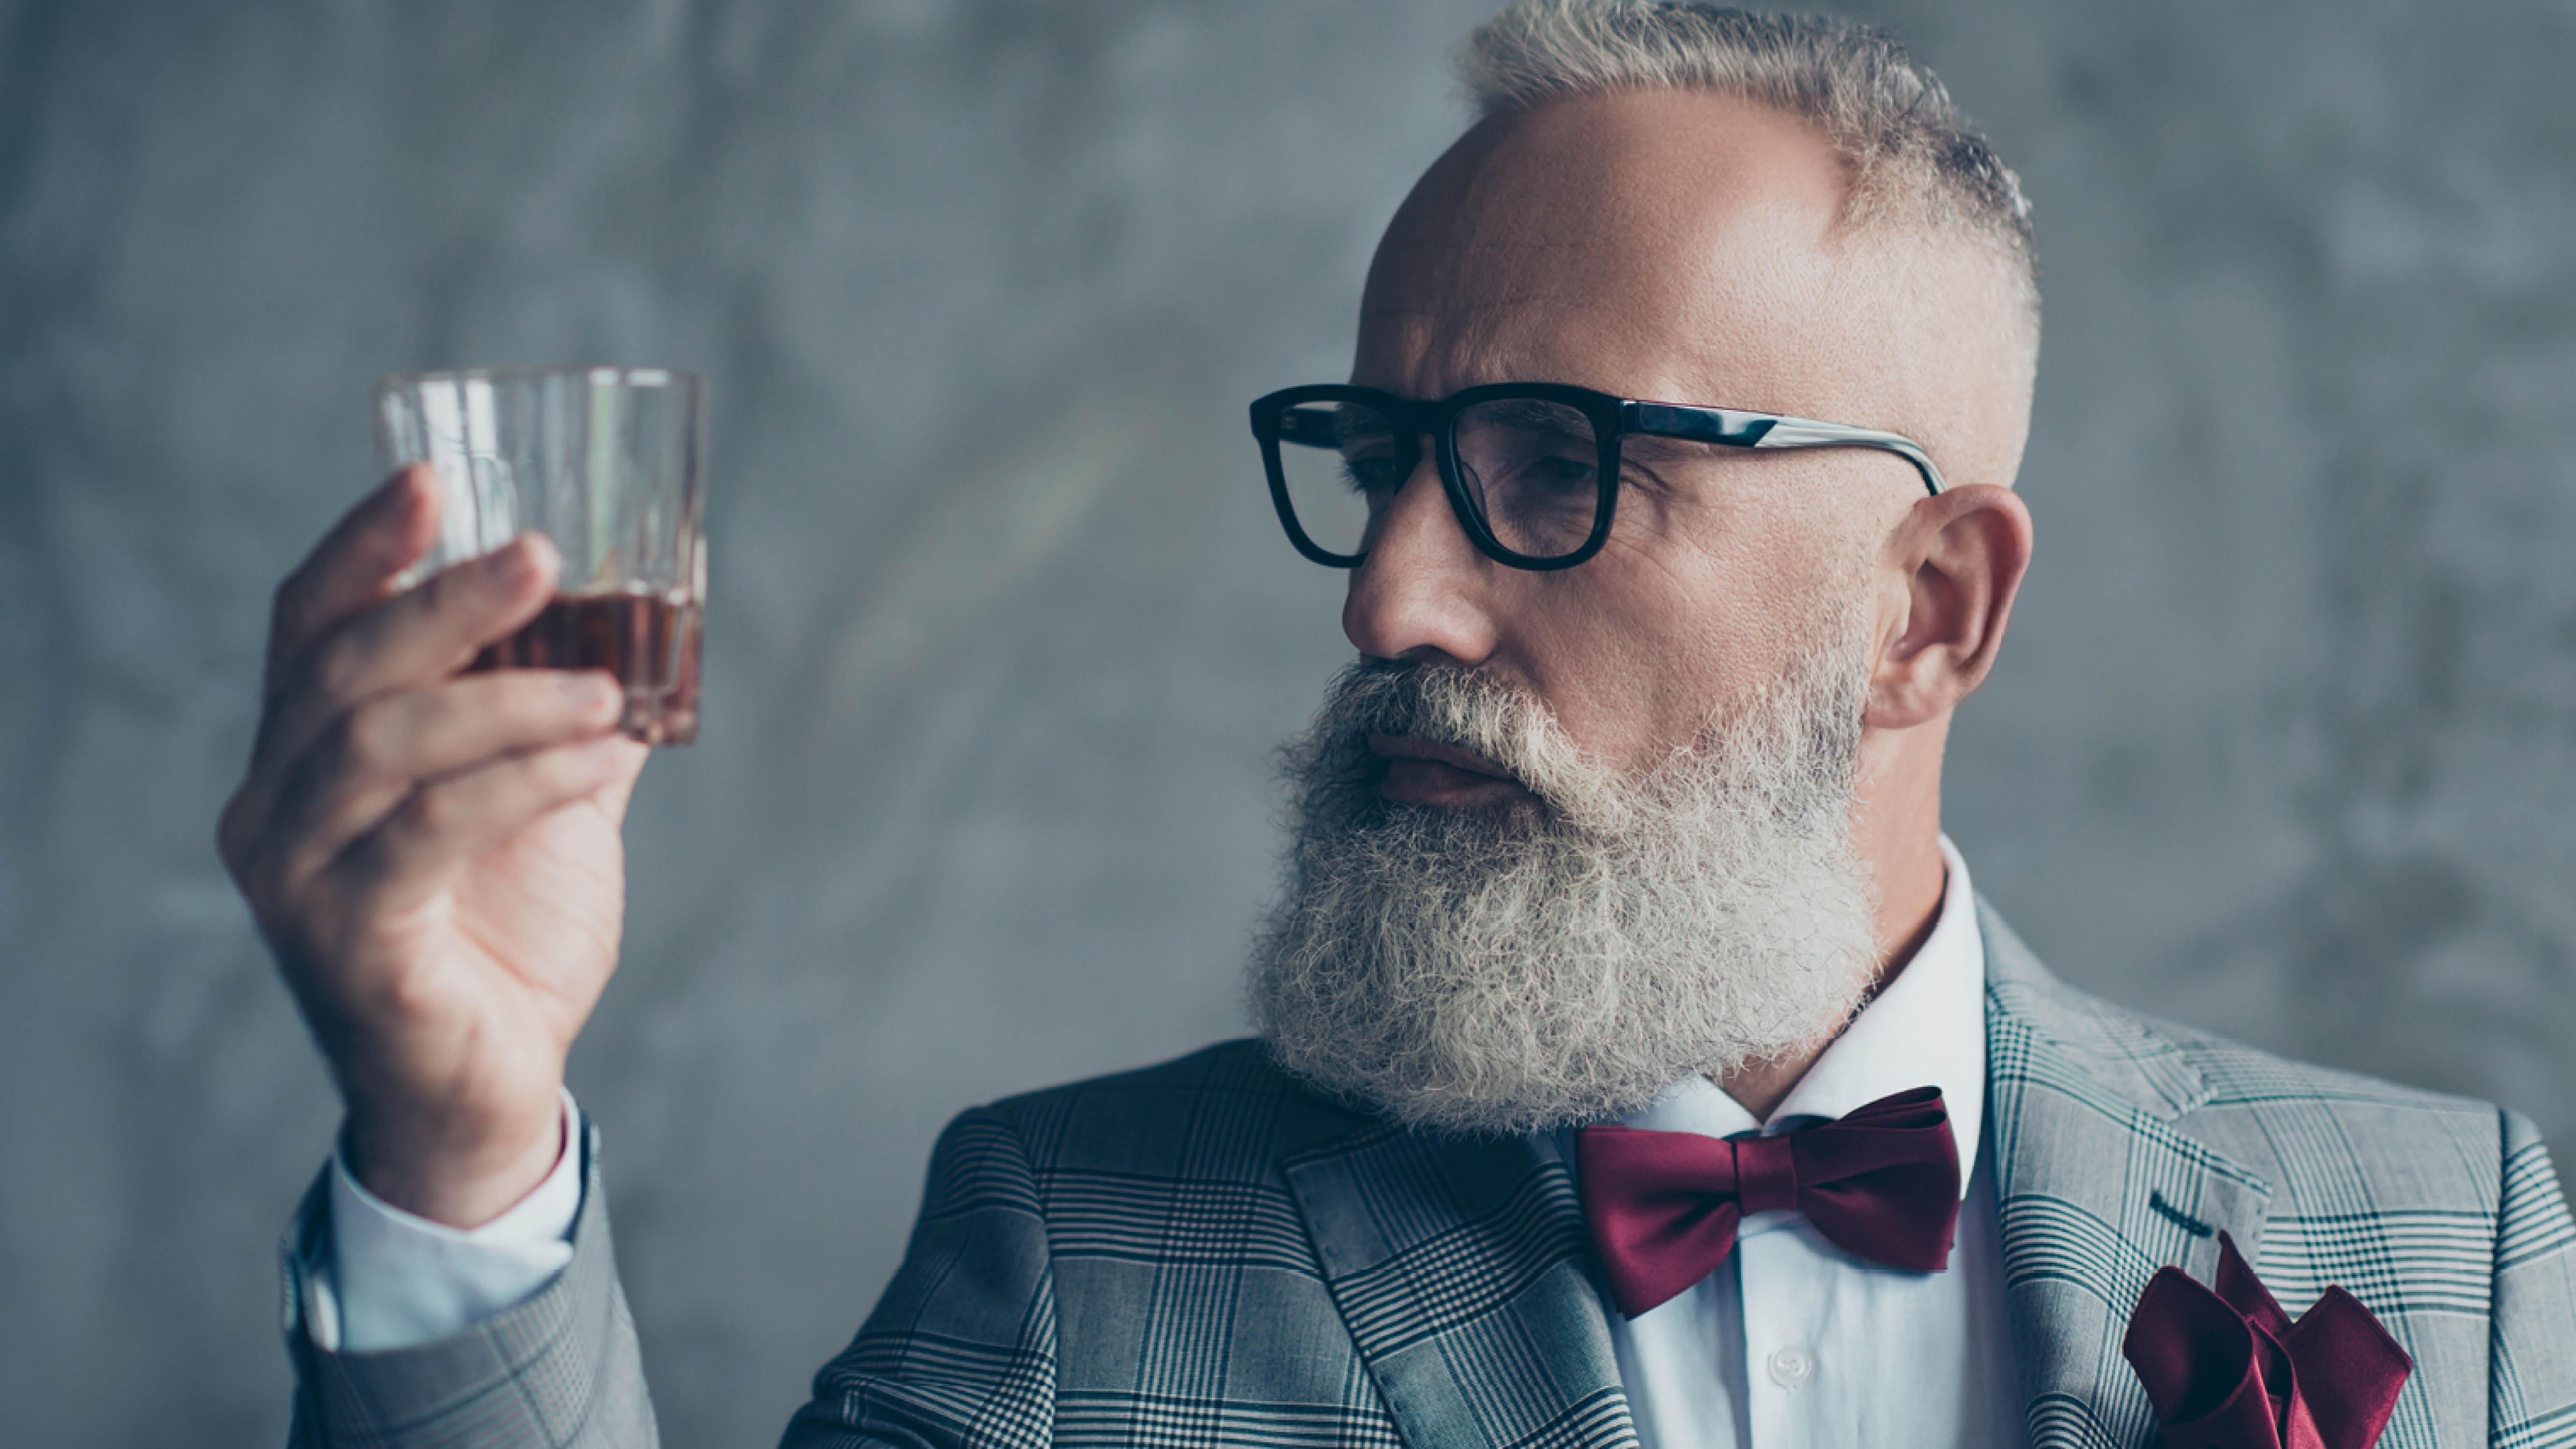 people-older-hipster-gentleman-looking-at-whiskey-glass.jpg